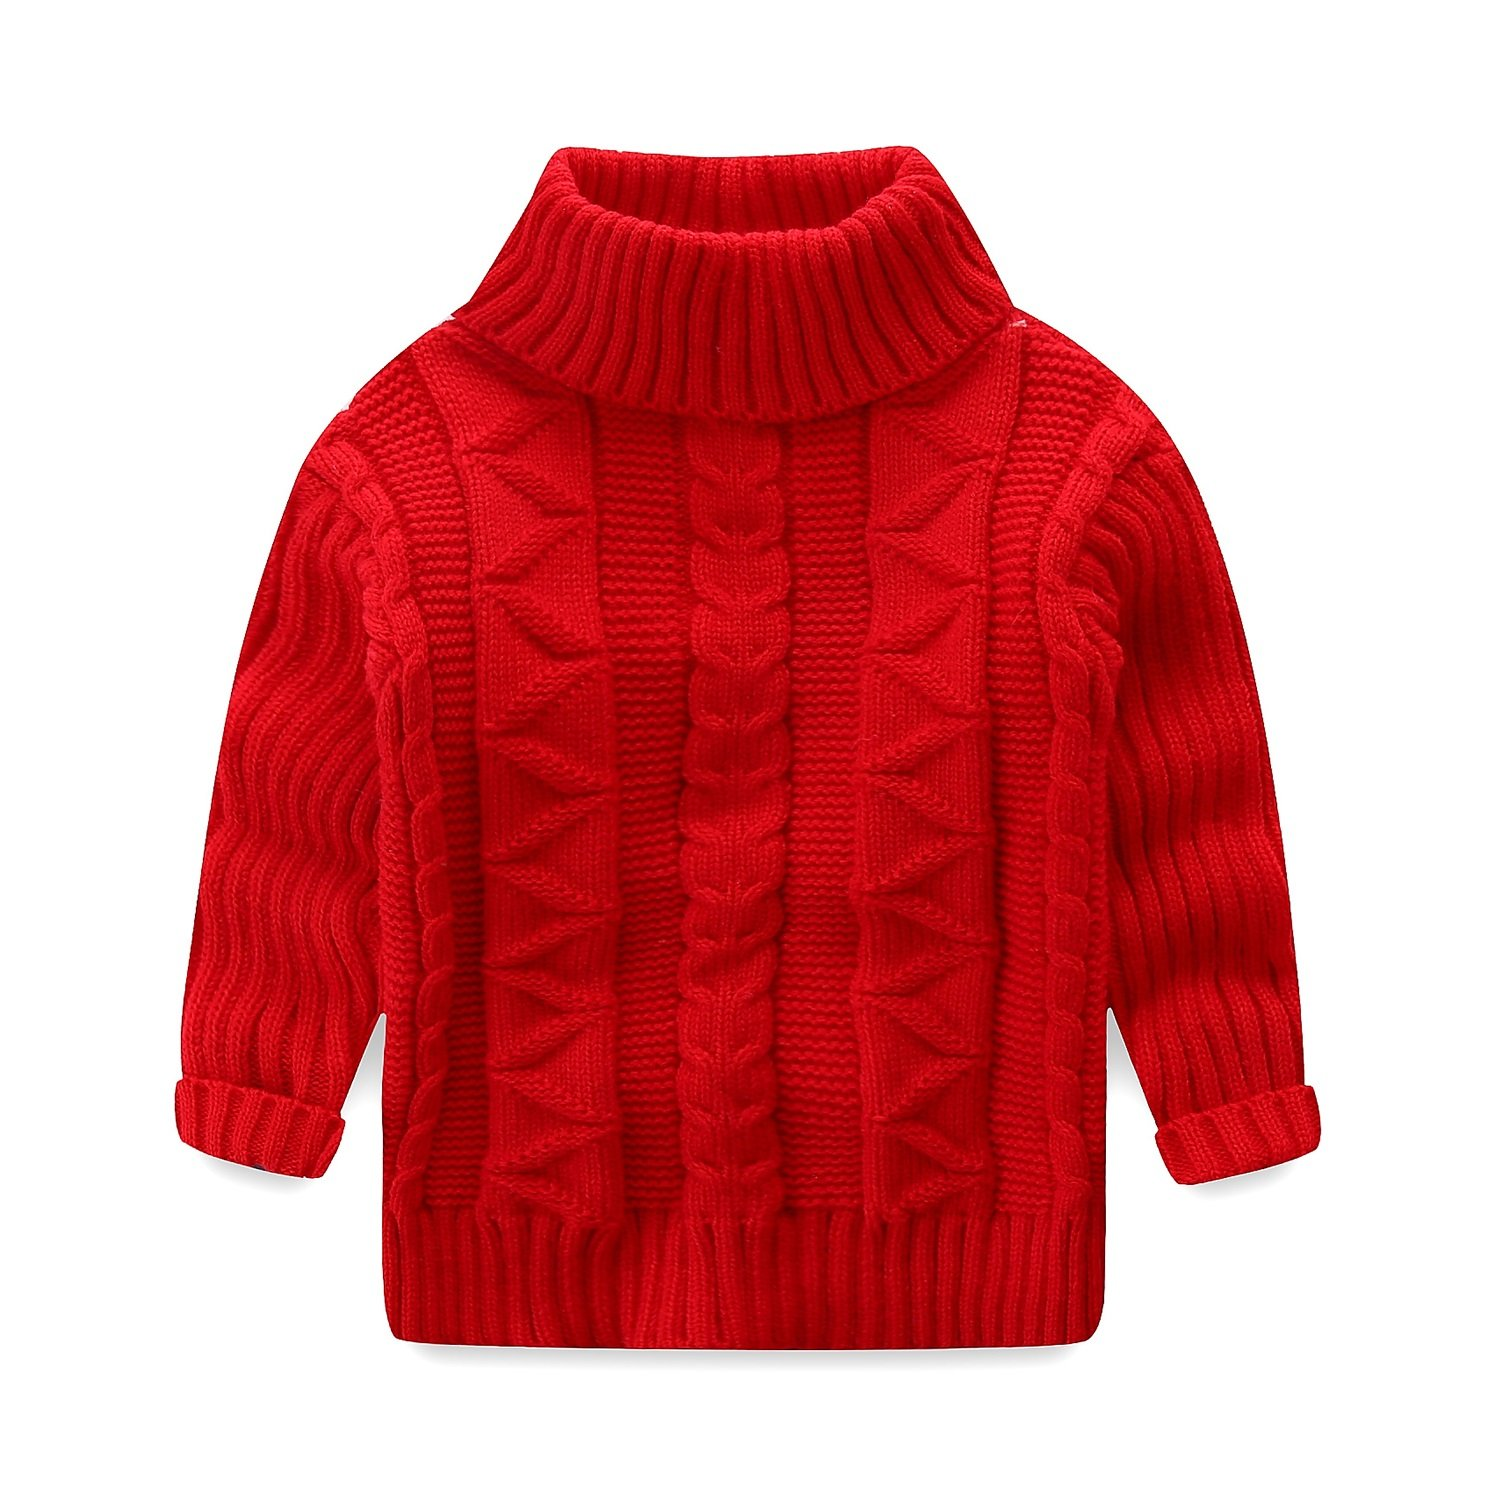 Mud Kingdom Toddler Boys Girls Turtleneck Pullover Base Tops Sweater Z-S0420